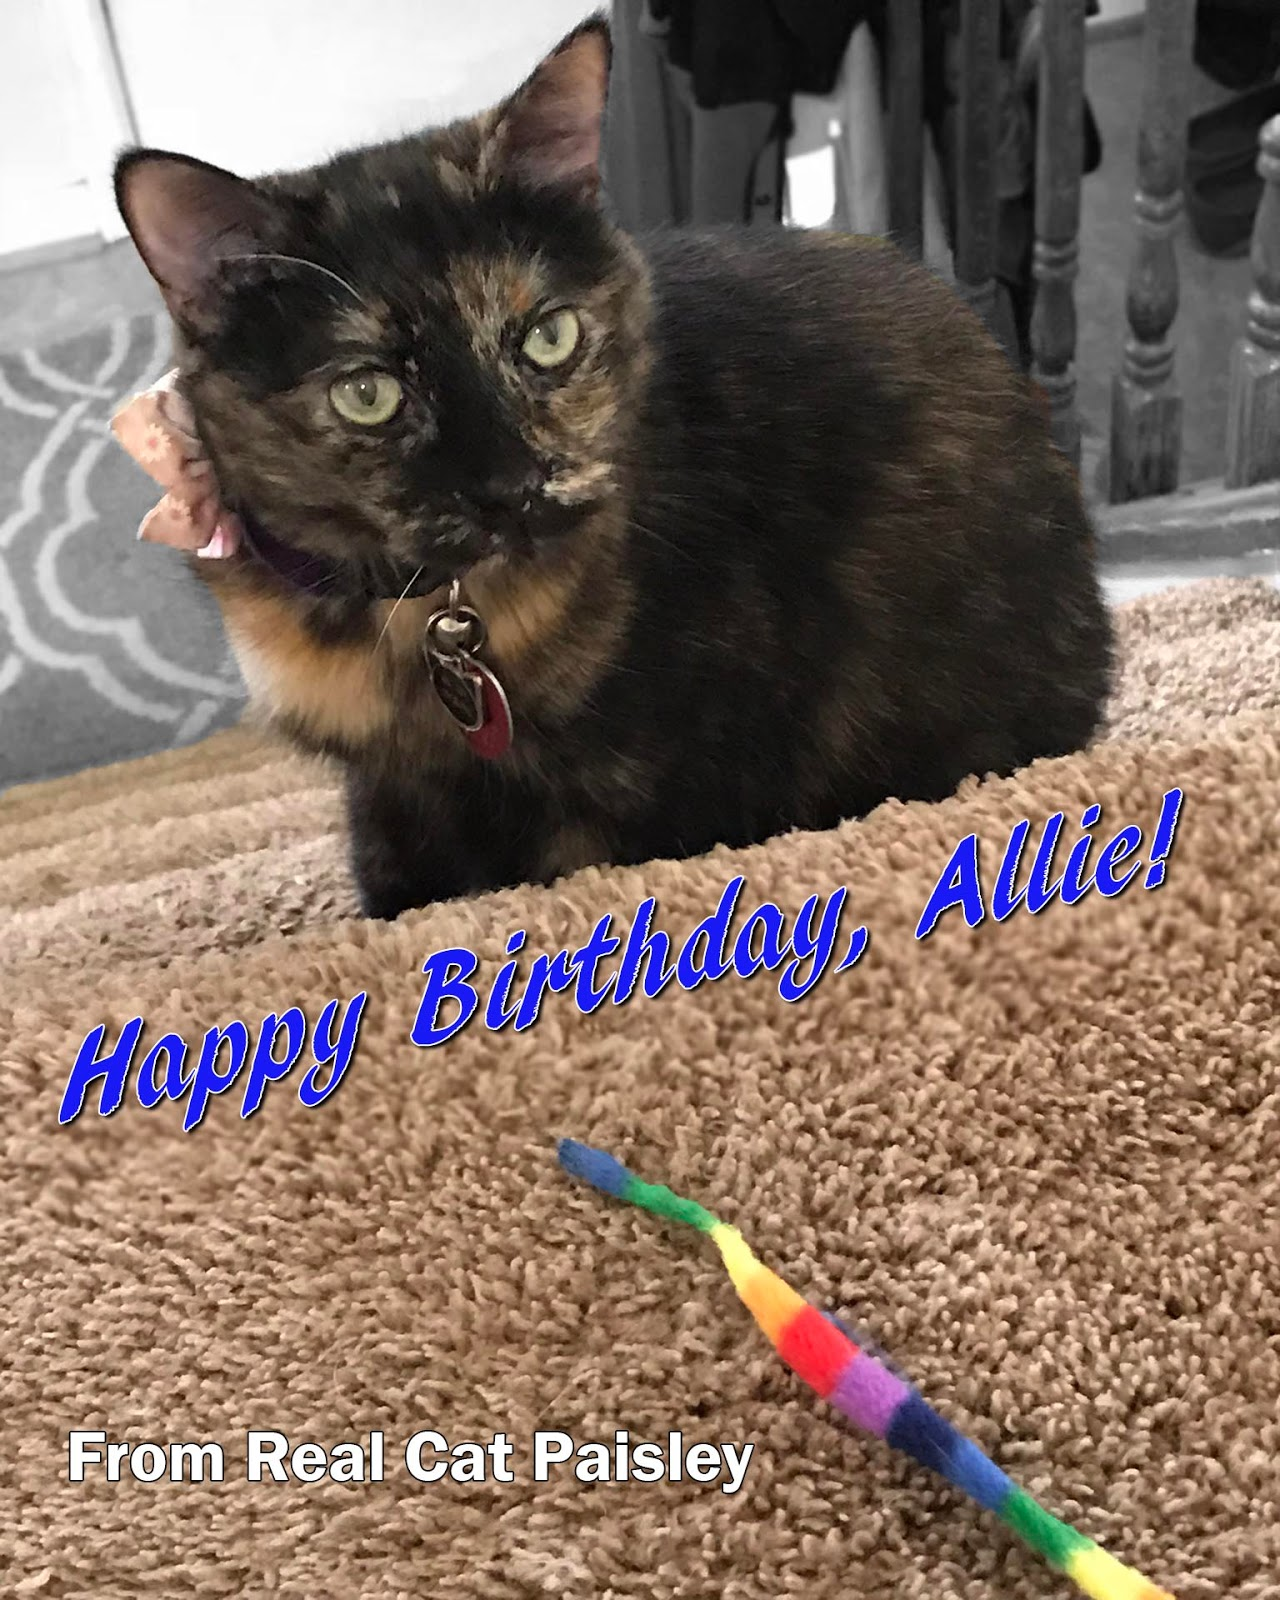 Real Cat Paisley Wishes Allie A Happy Birthday